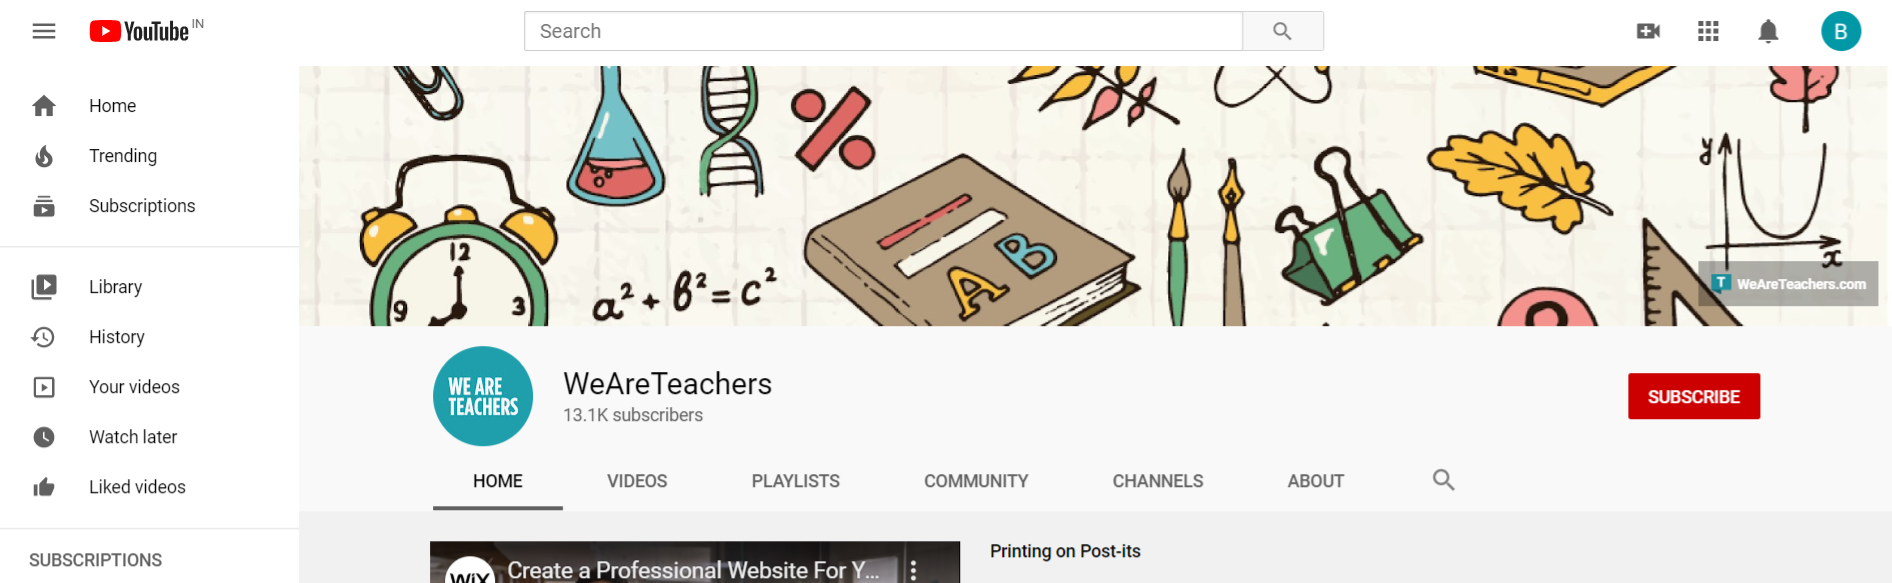 We are teachers: edtech youtube channel